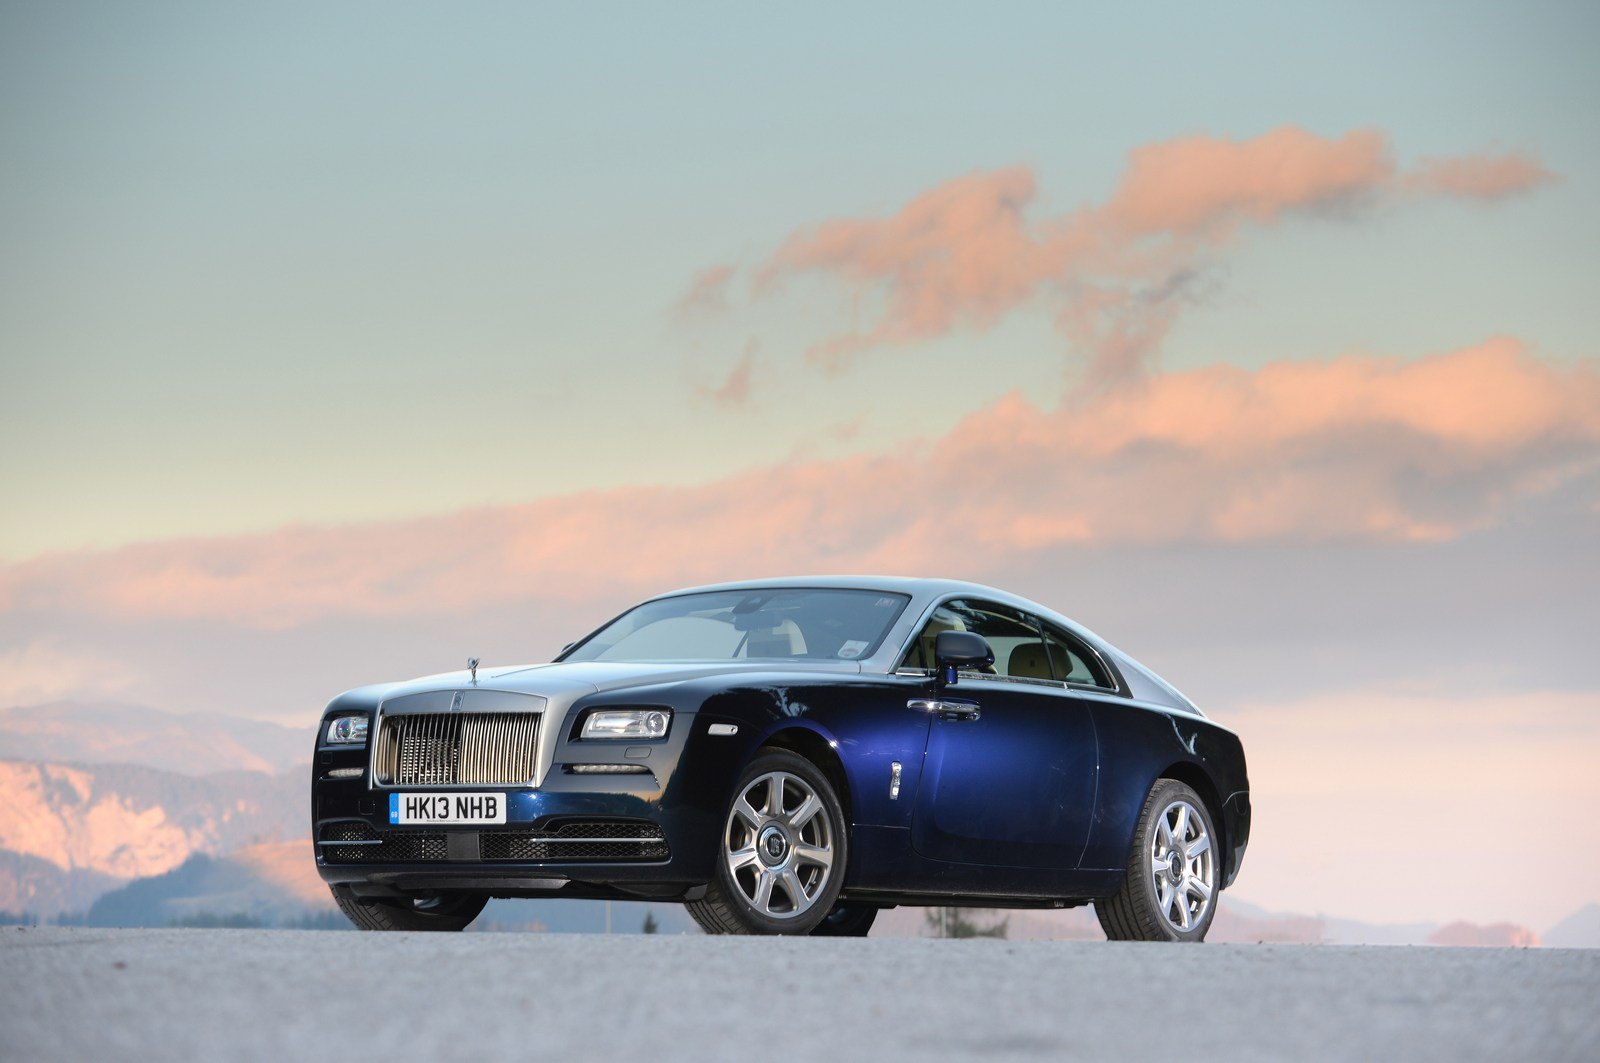 Rolls royce wraith black badge 4k 2017 50 images hd car wallpaper the typical rolls royce owner is just 45 years old publicscrutiny Choice Image